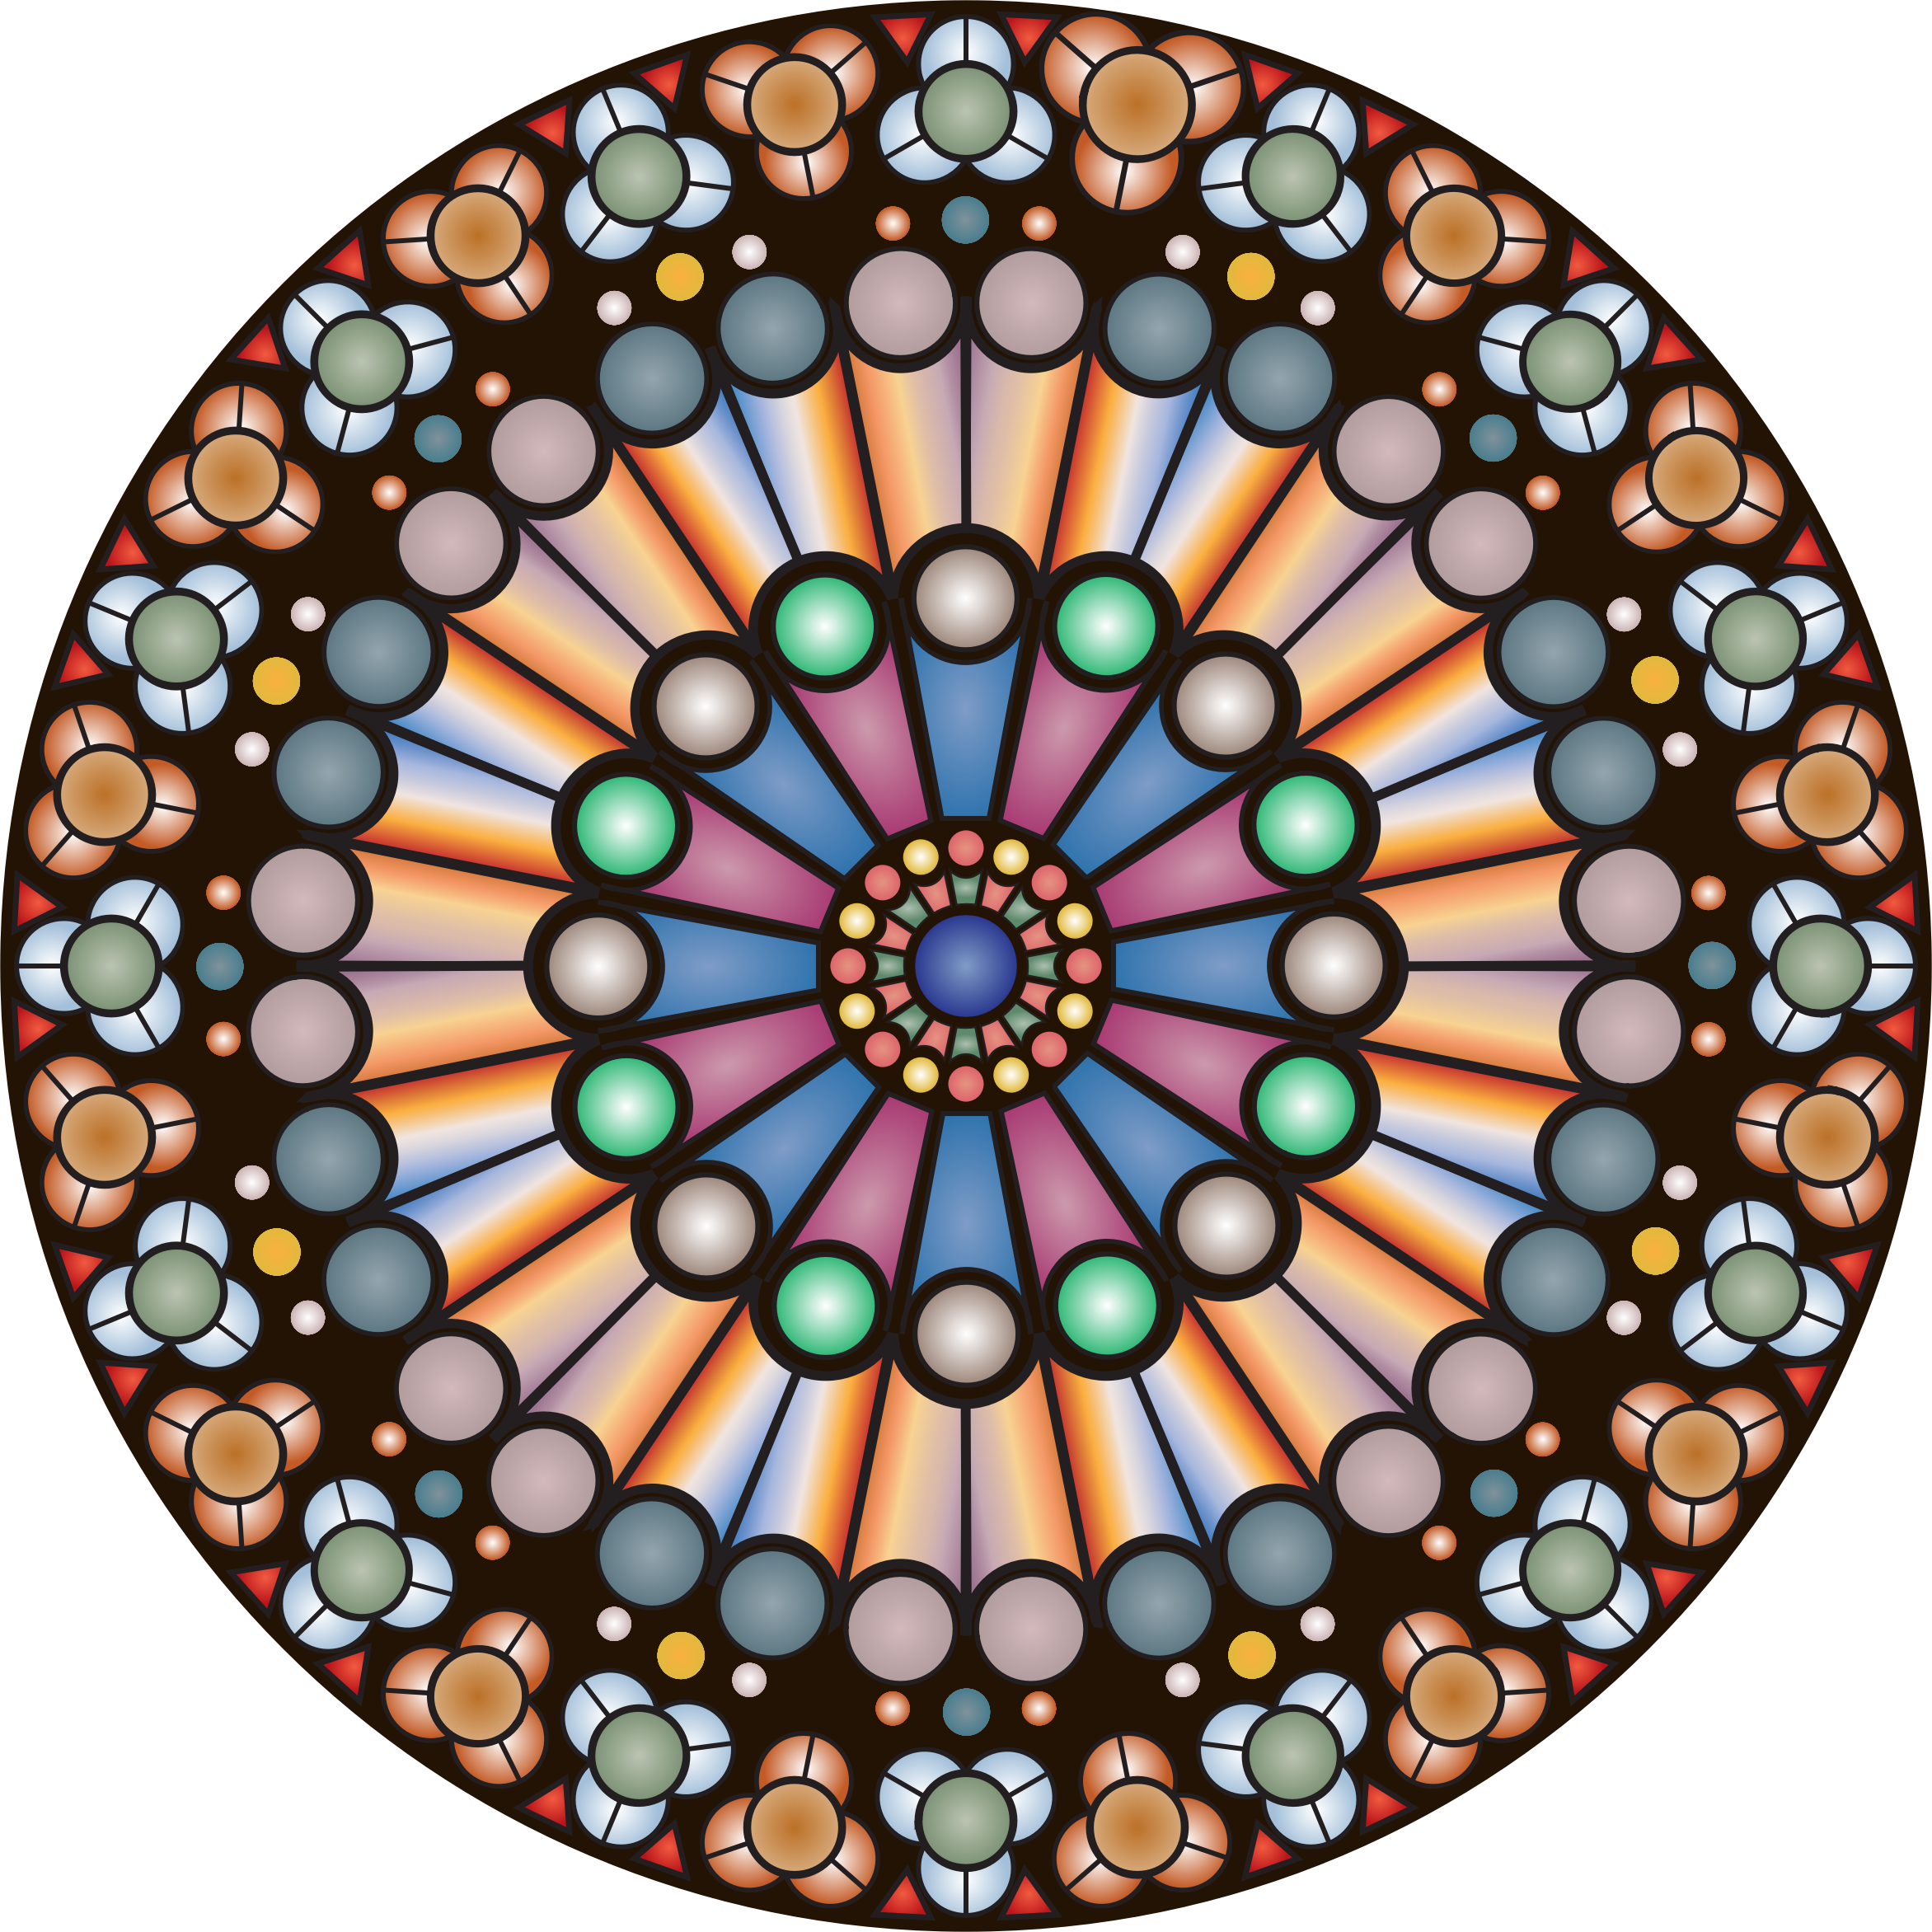 Church window png vector. Rose notre dame icons